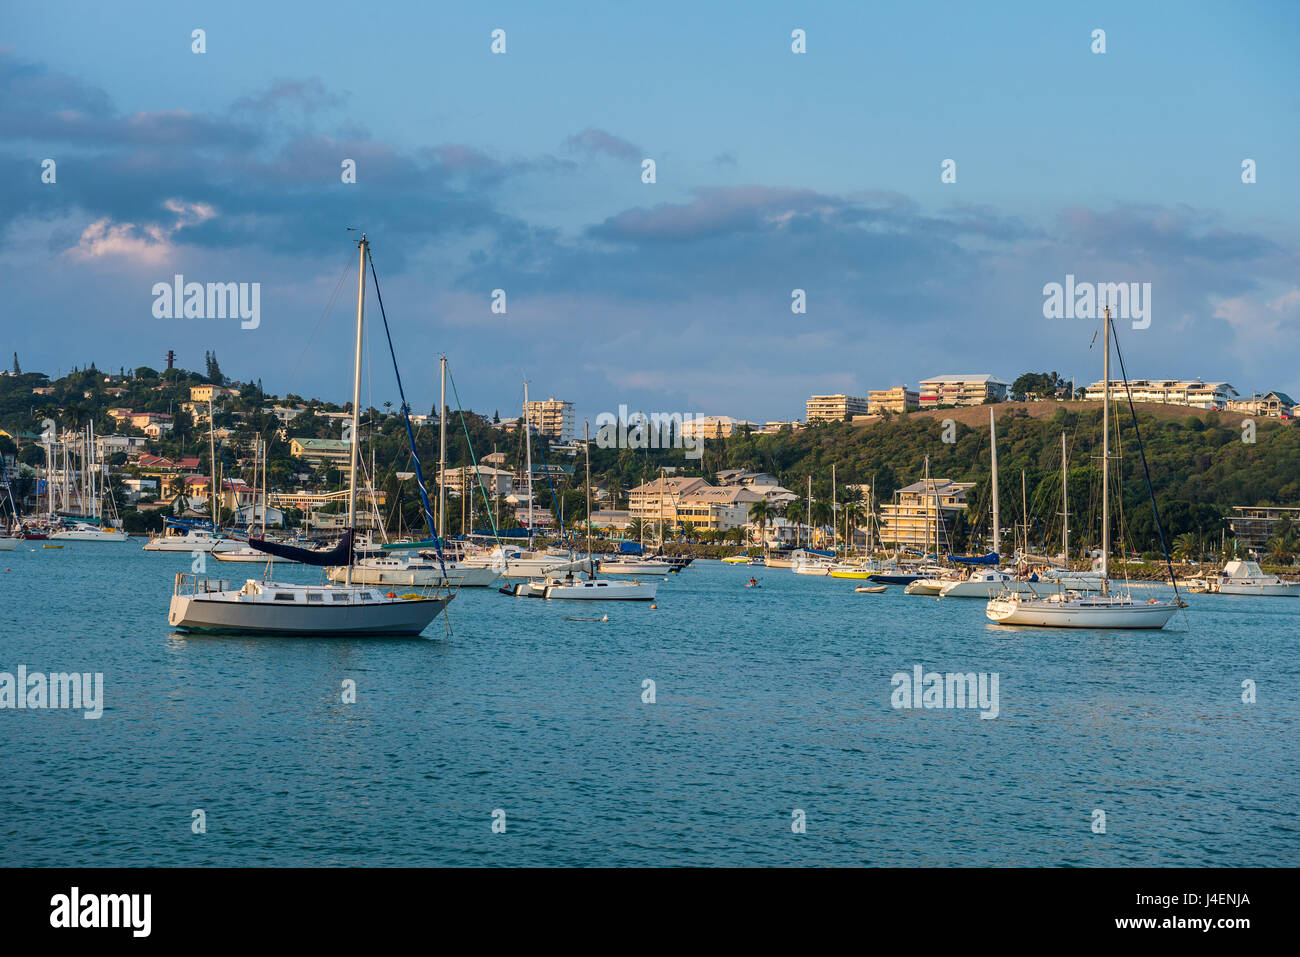 Little boats in the Magenta Port Sud, bay, Noumea, New Caledonia, Pacific - Stock Image